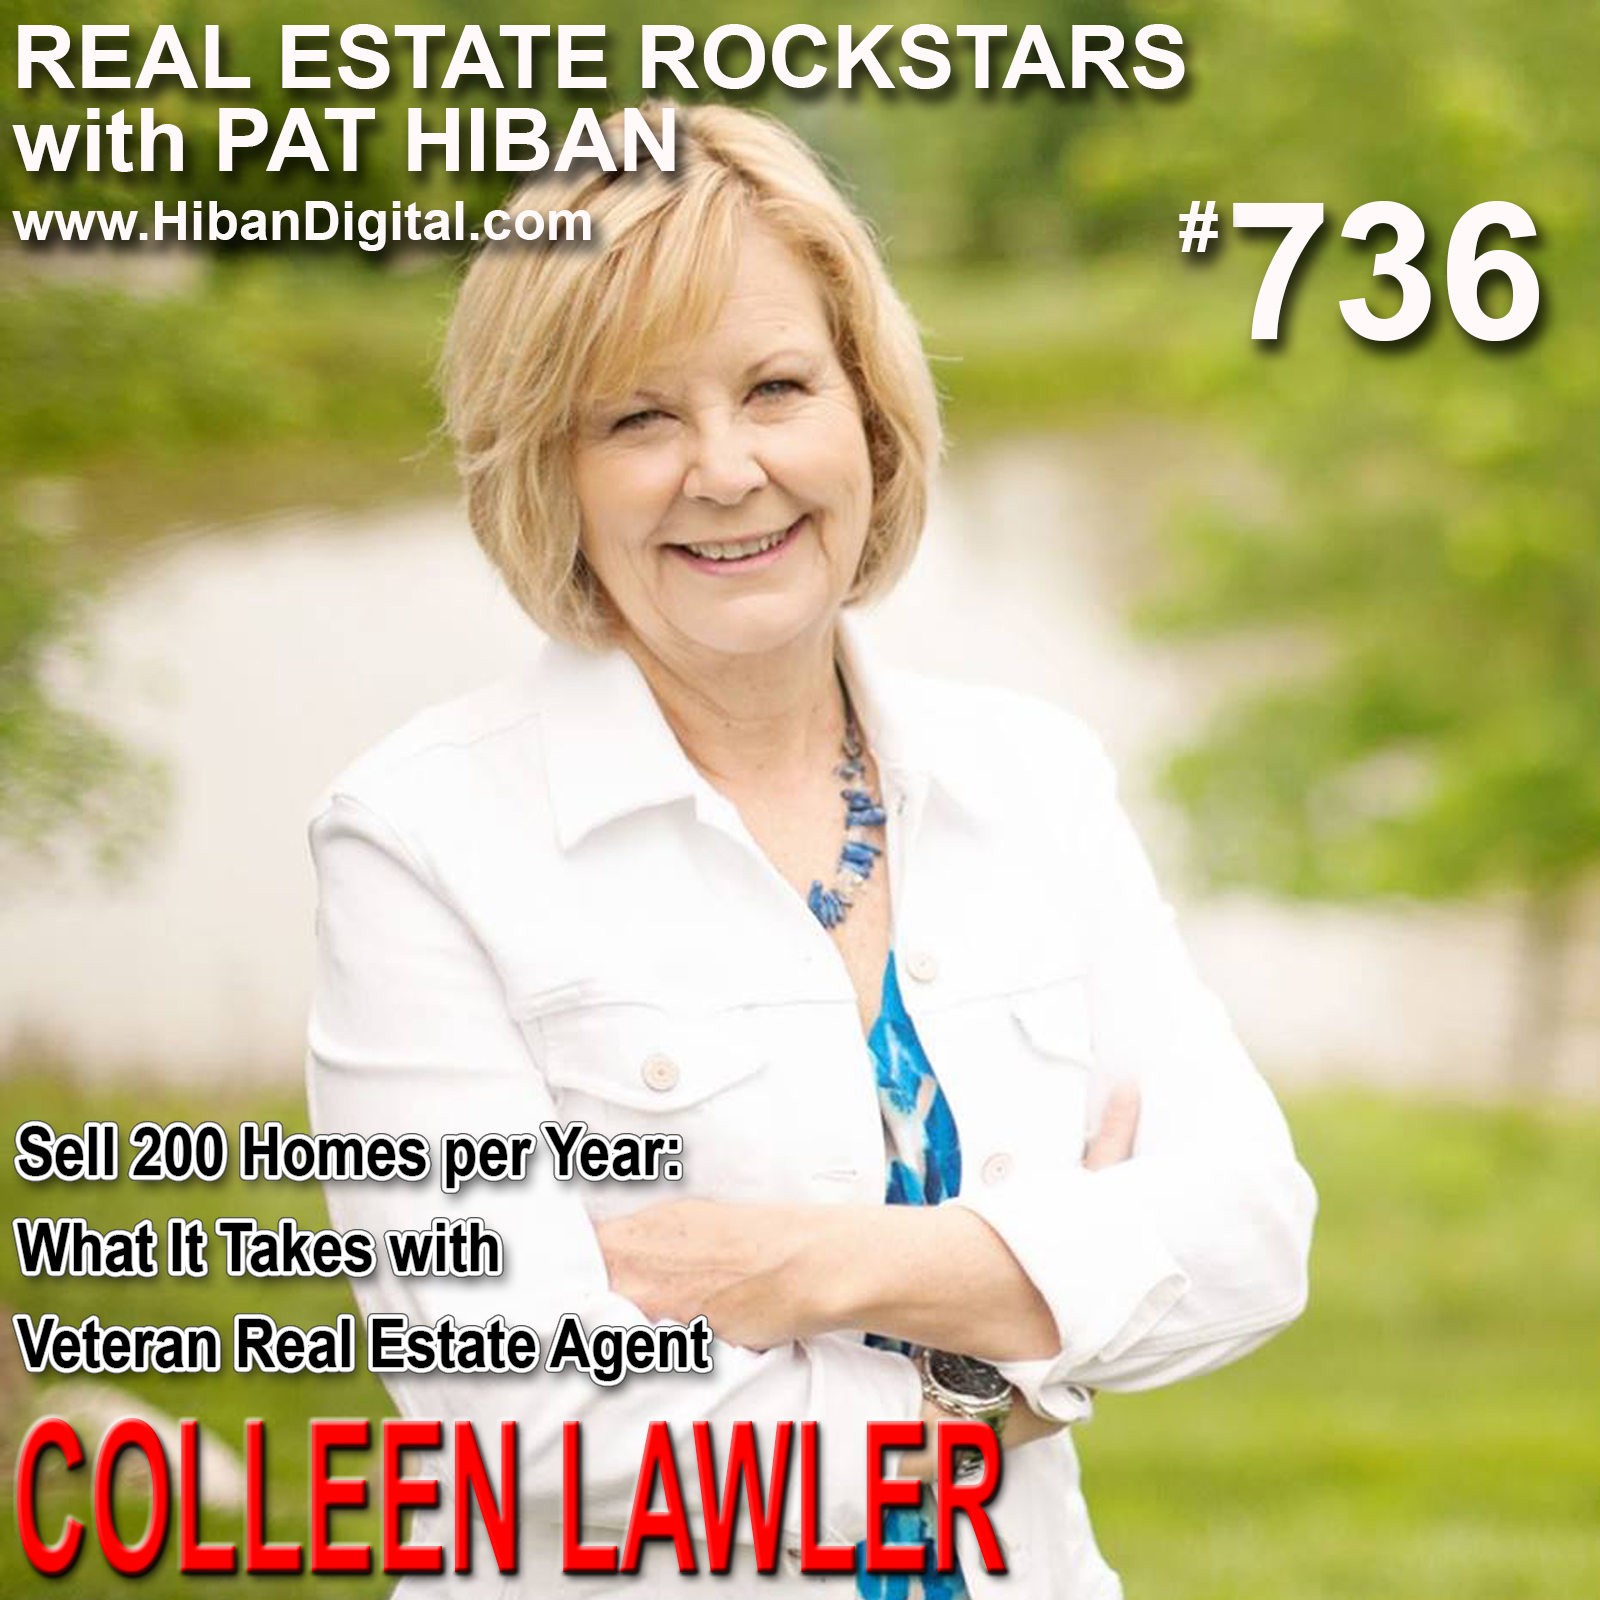 Colleen-Lawler